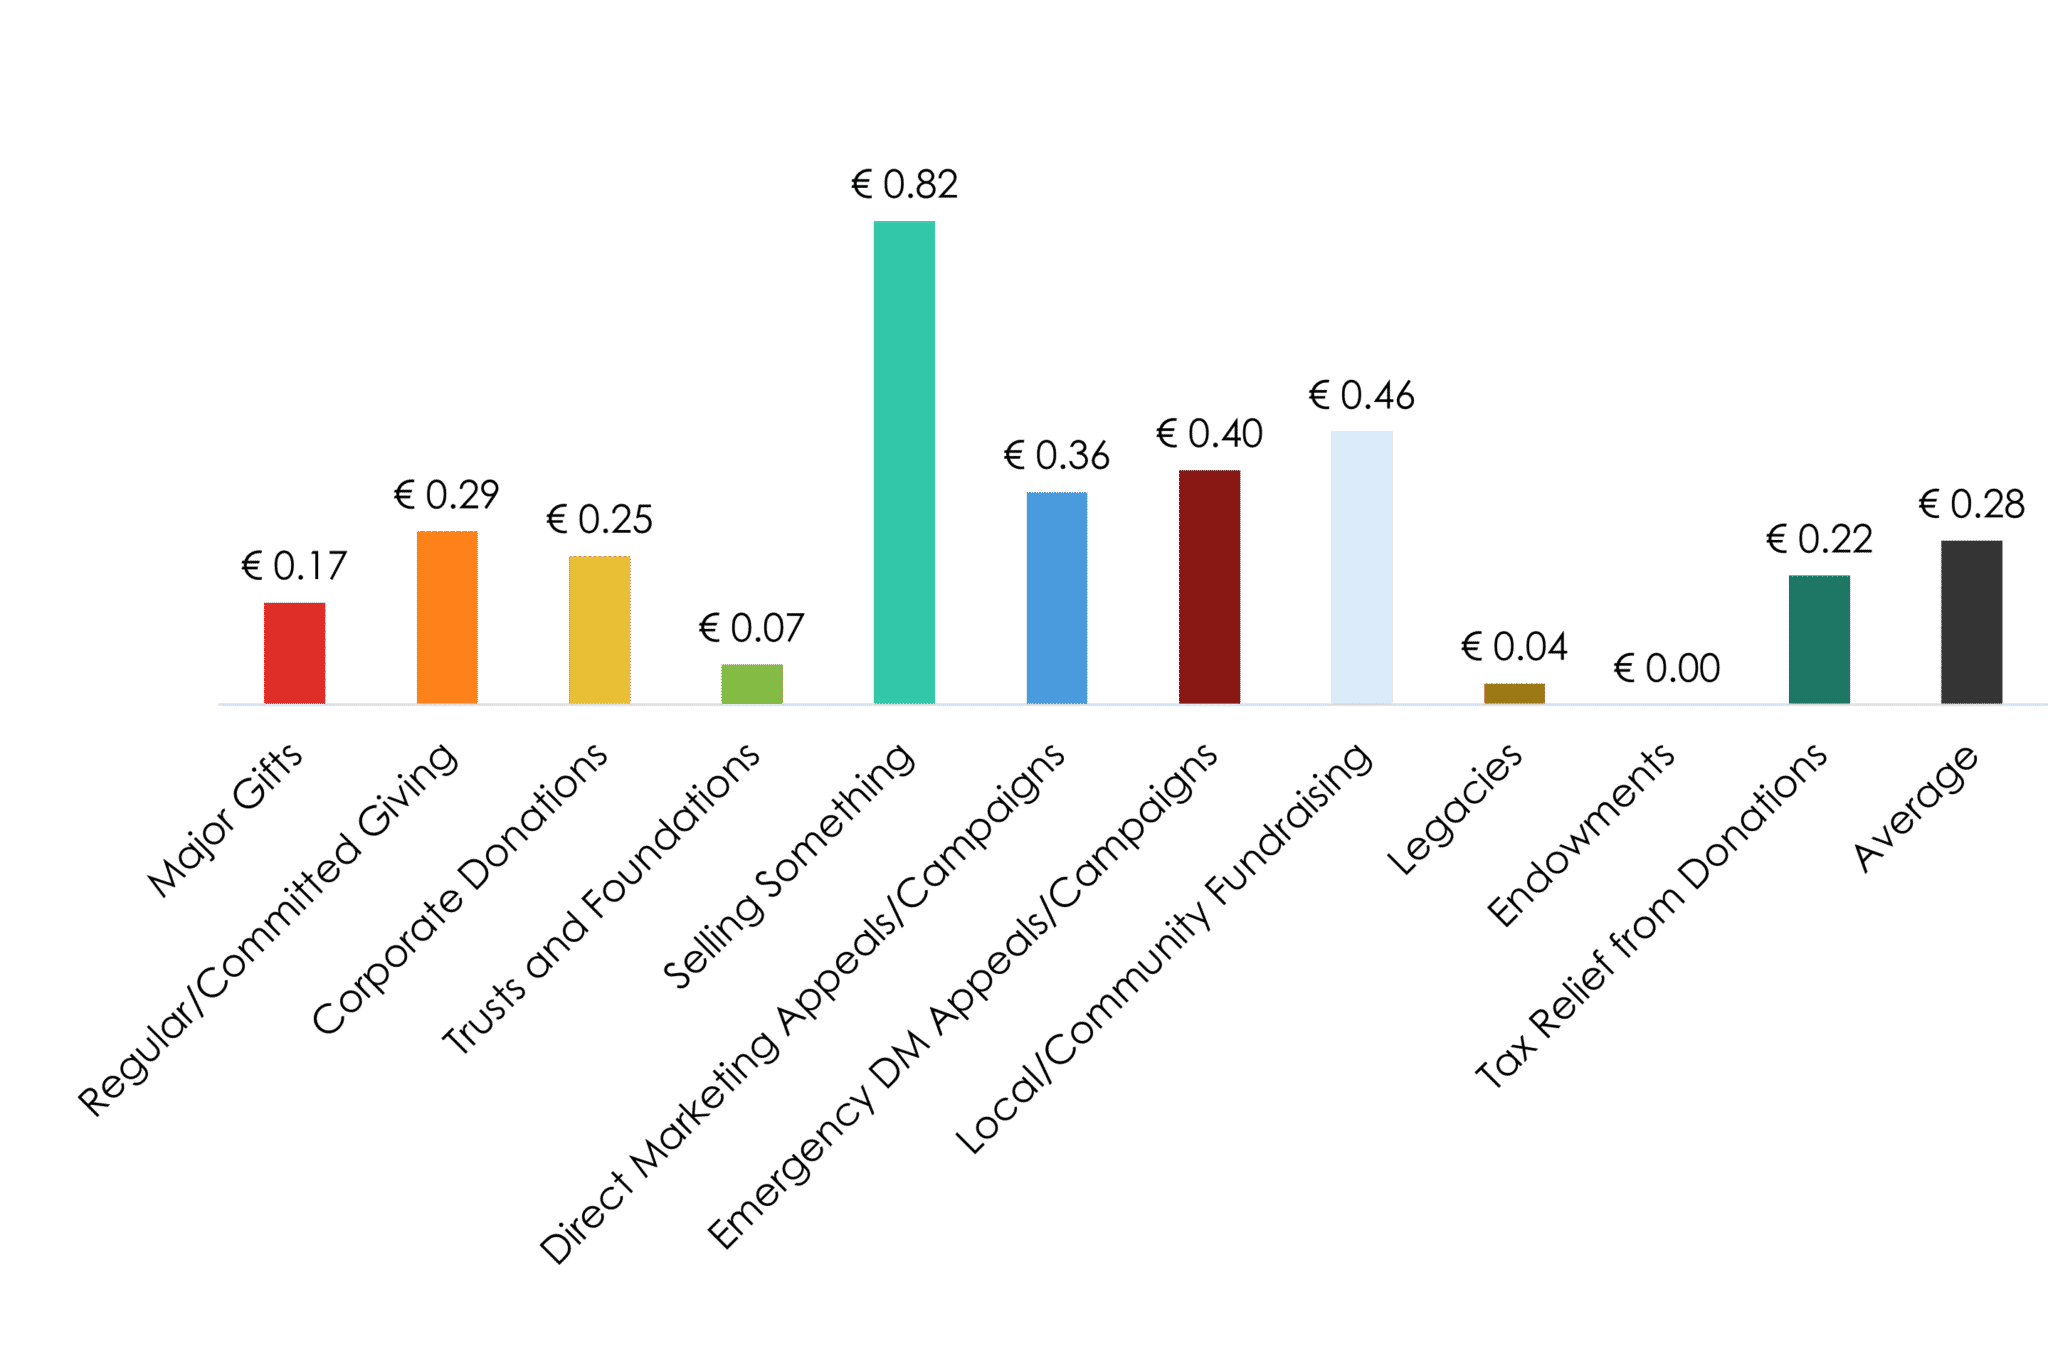 Cost to raise €1 in 2019 Irish Giving Index 2into3